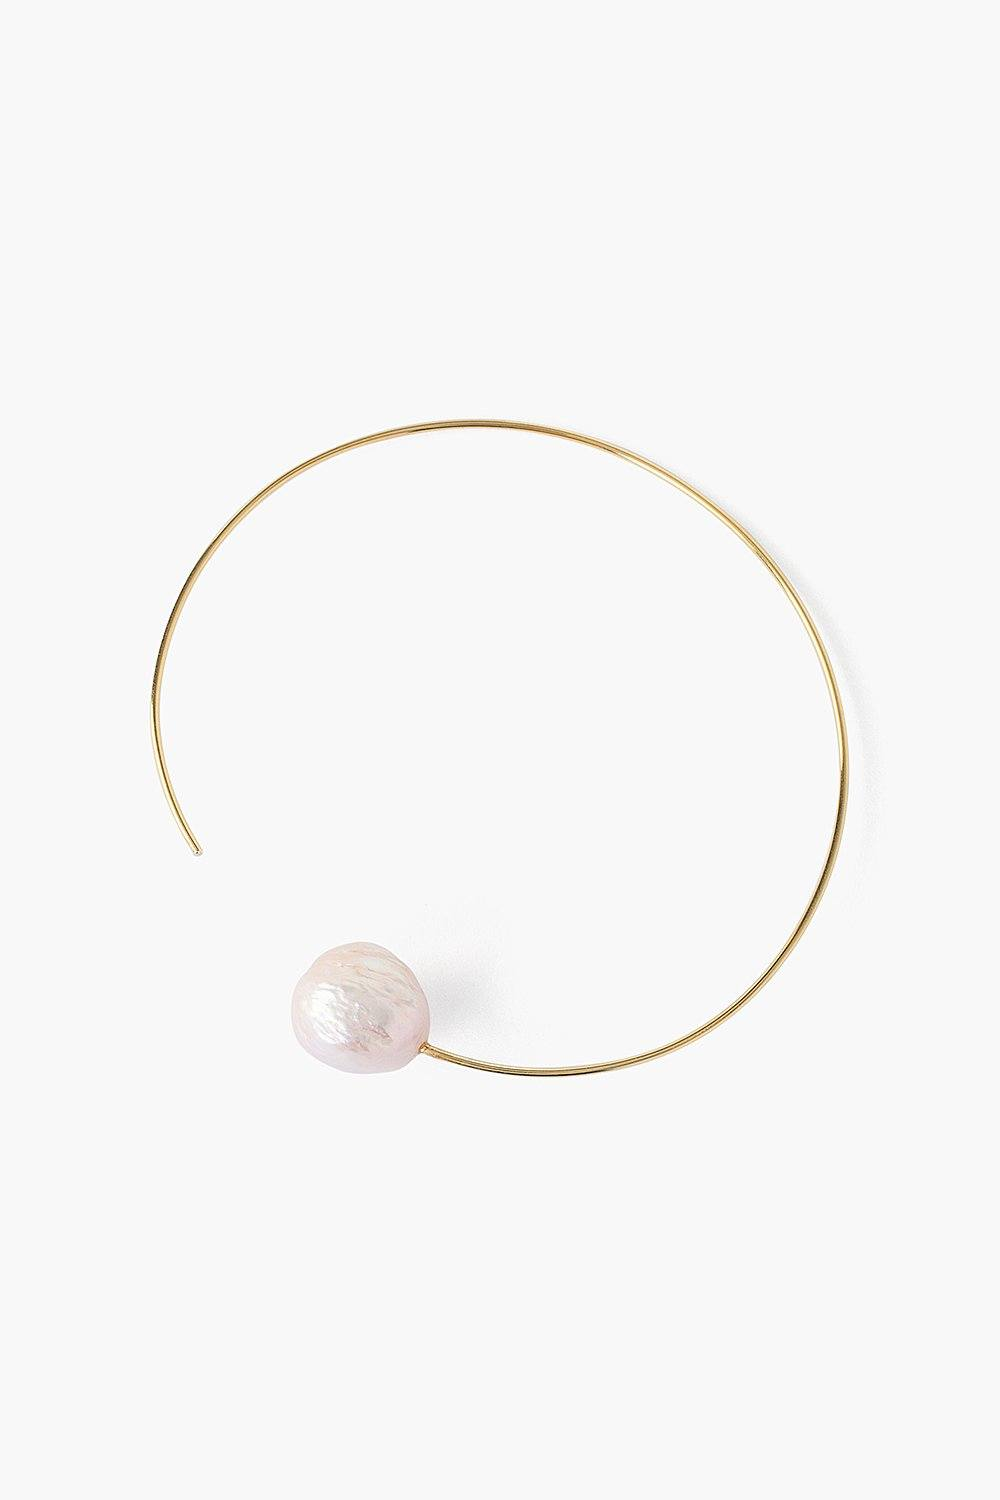 Pink Pearl and Gold Halo Hoop Earrings